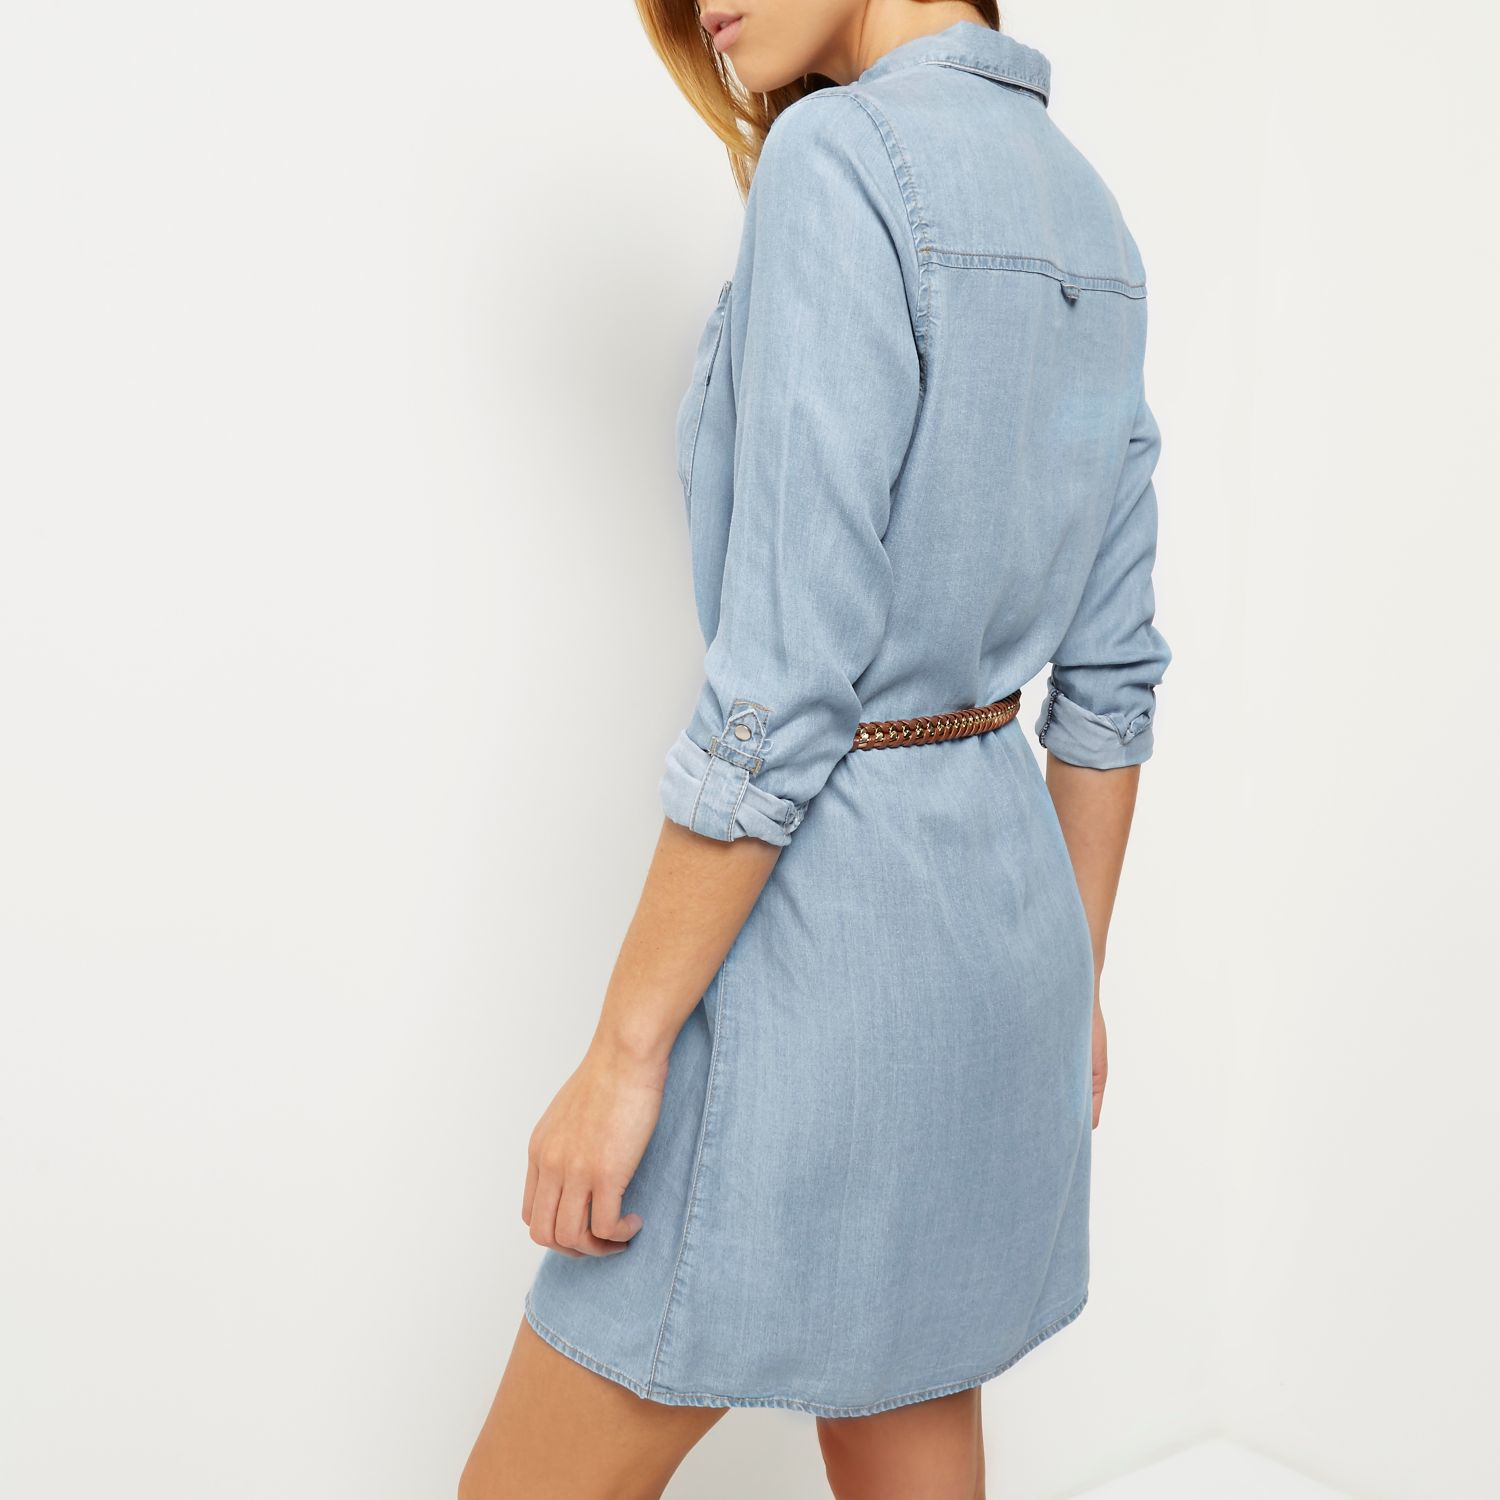 Lyst - River Island Light Blue Denim Shirt Dress in Blue